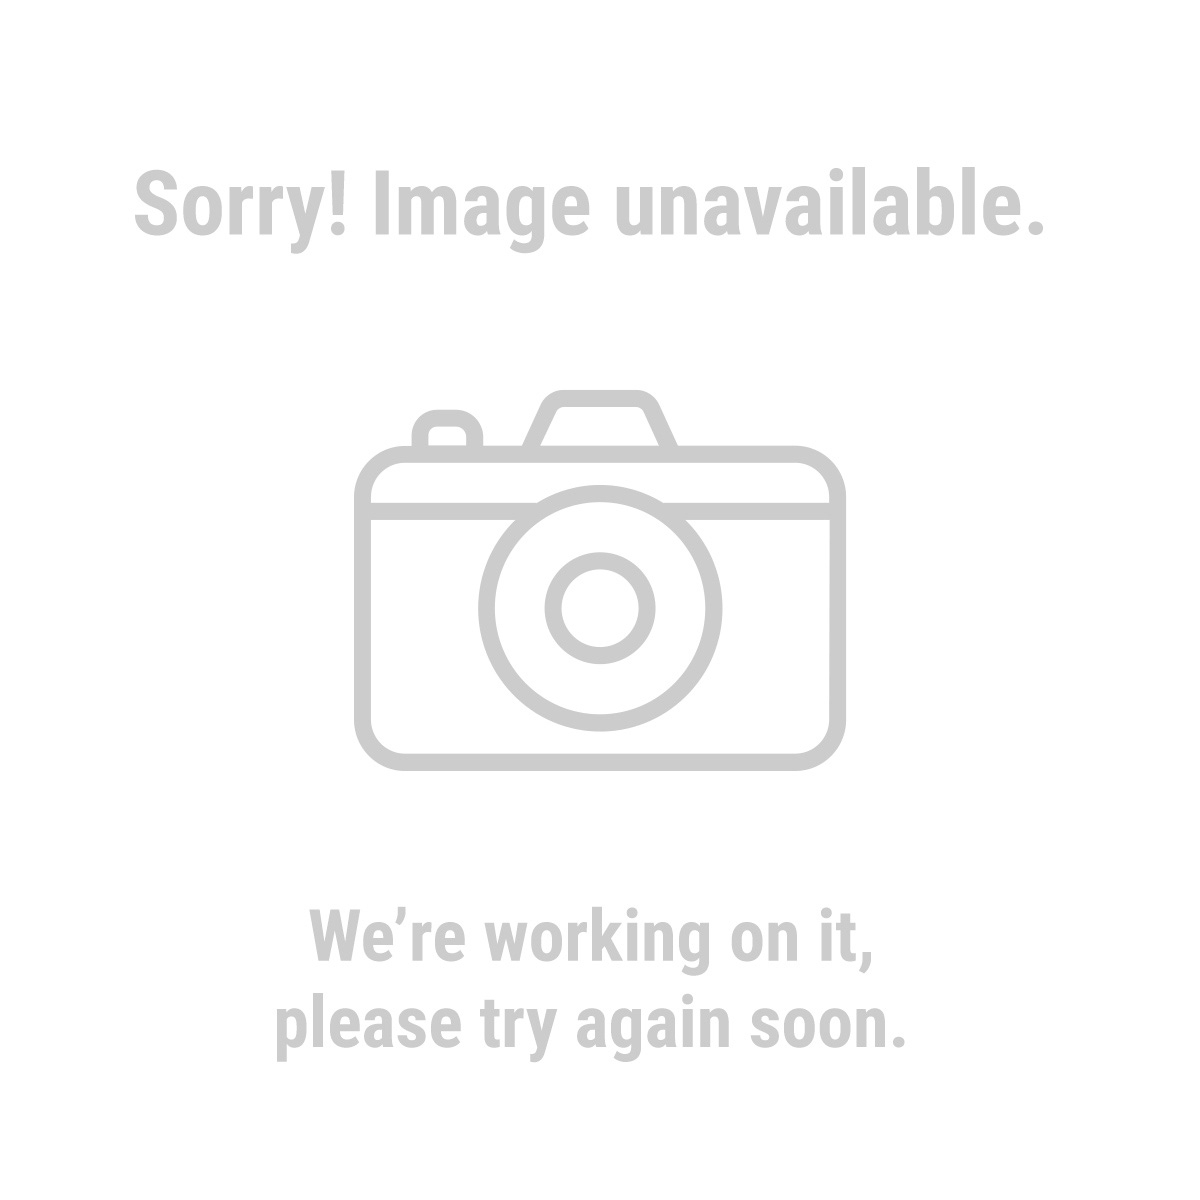 "Haul-Master 37767 13"" x 5"" Heavy Duty Pneumatic Tire"